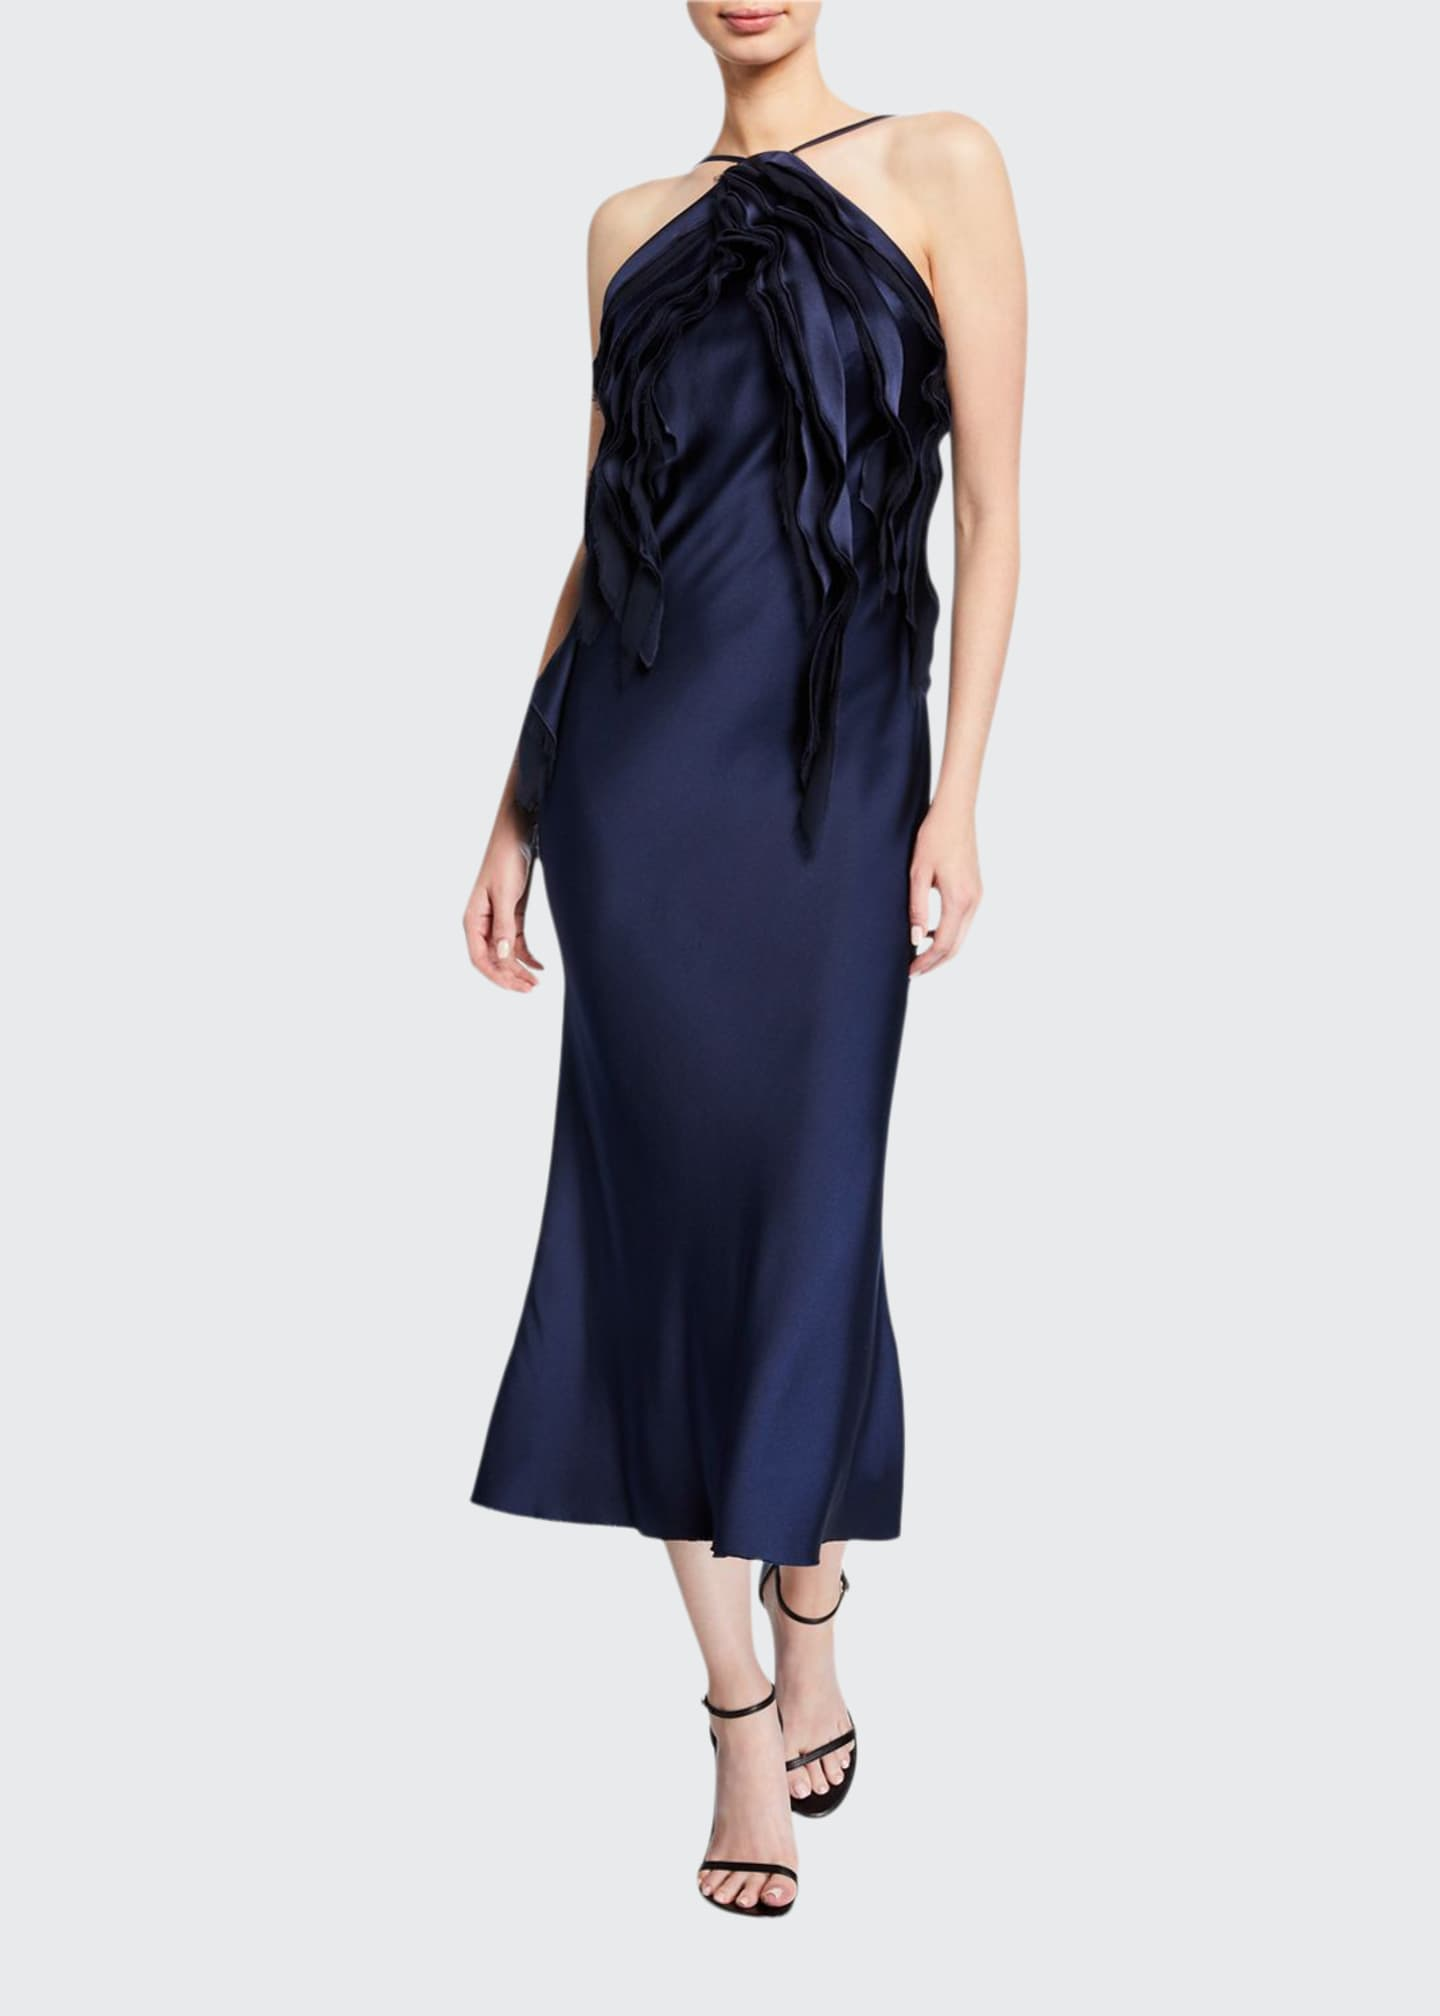 Jason Wu Collection Satin Ruffled-Front Halter Dress